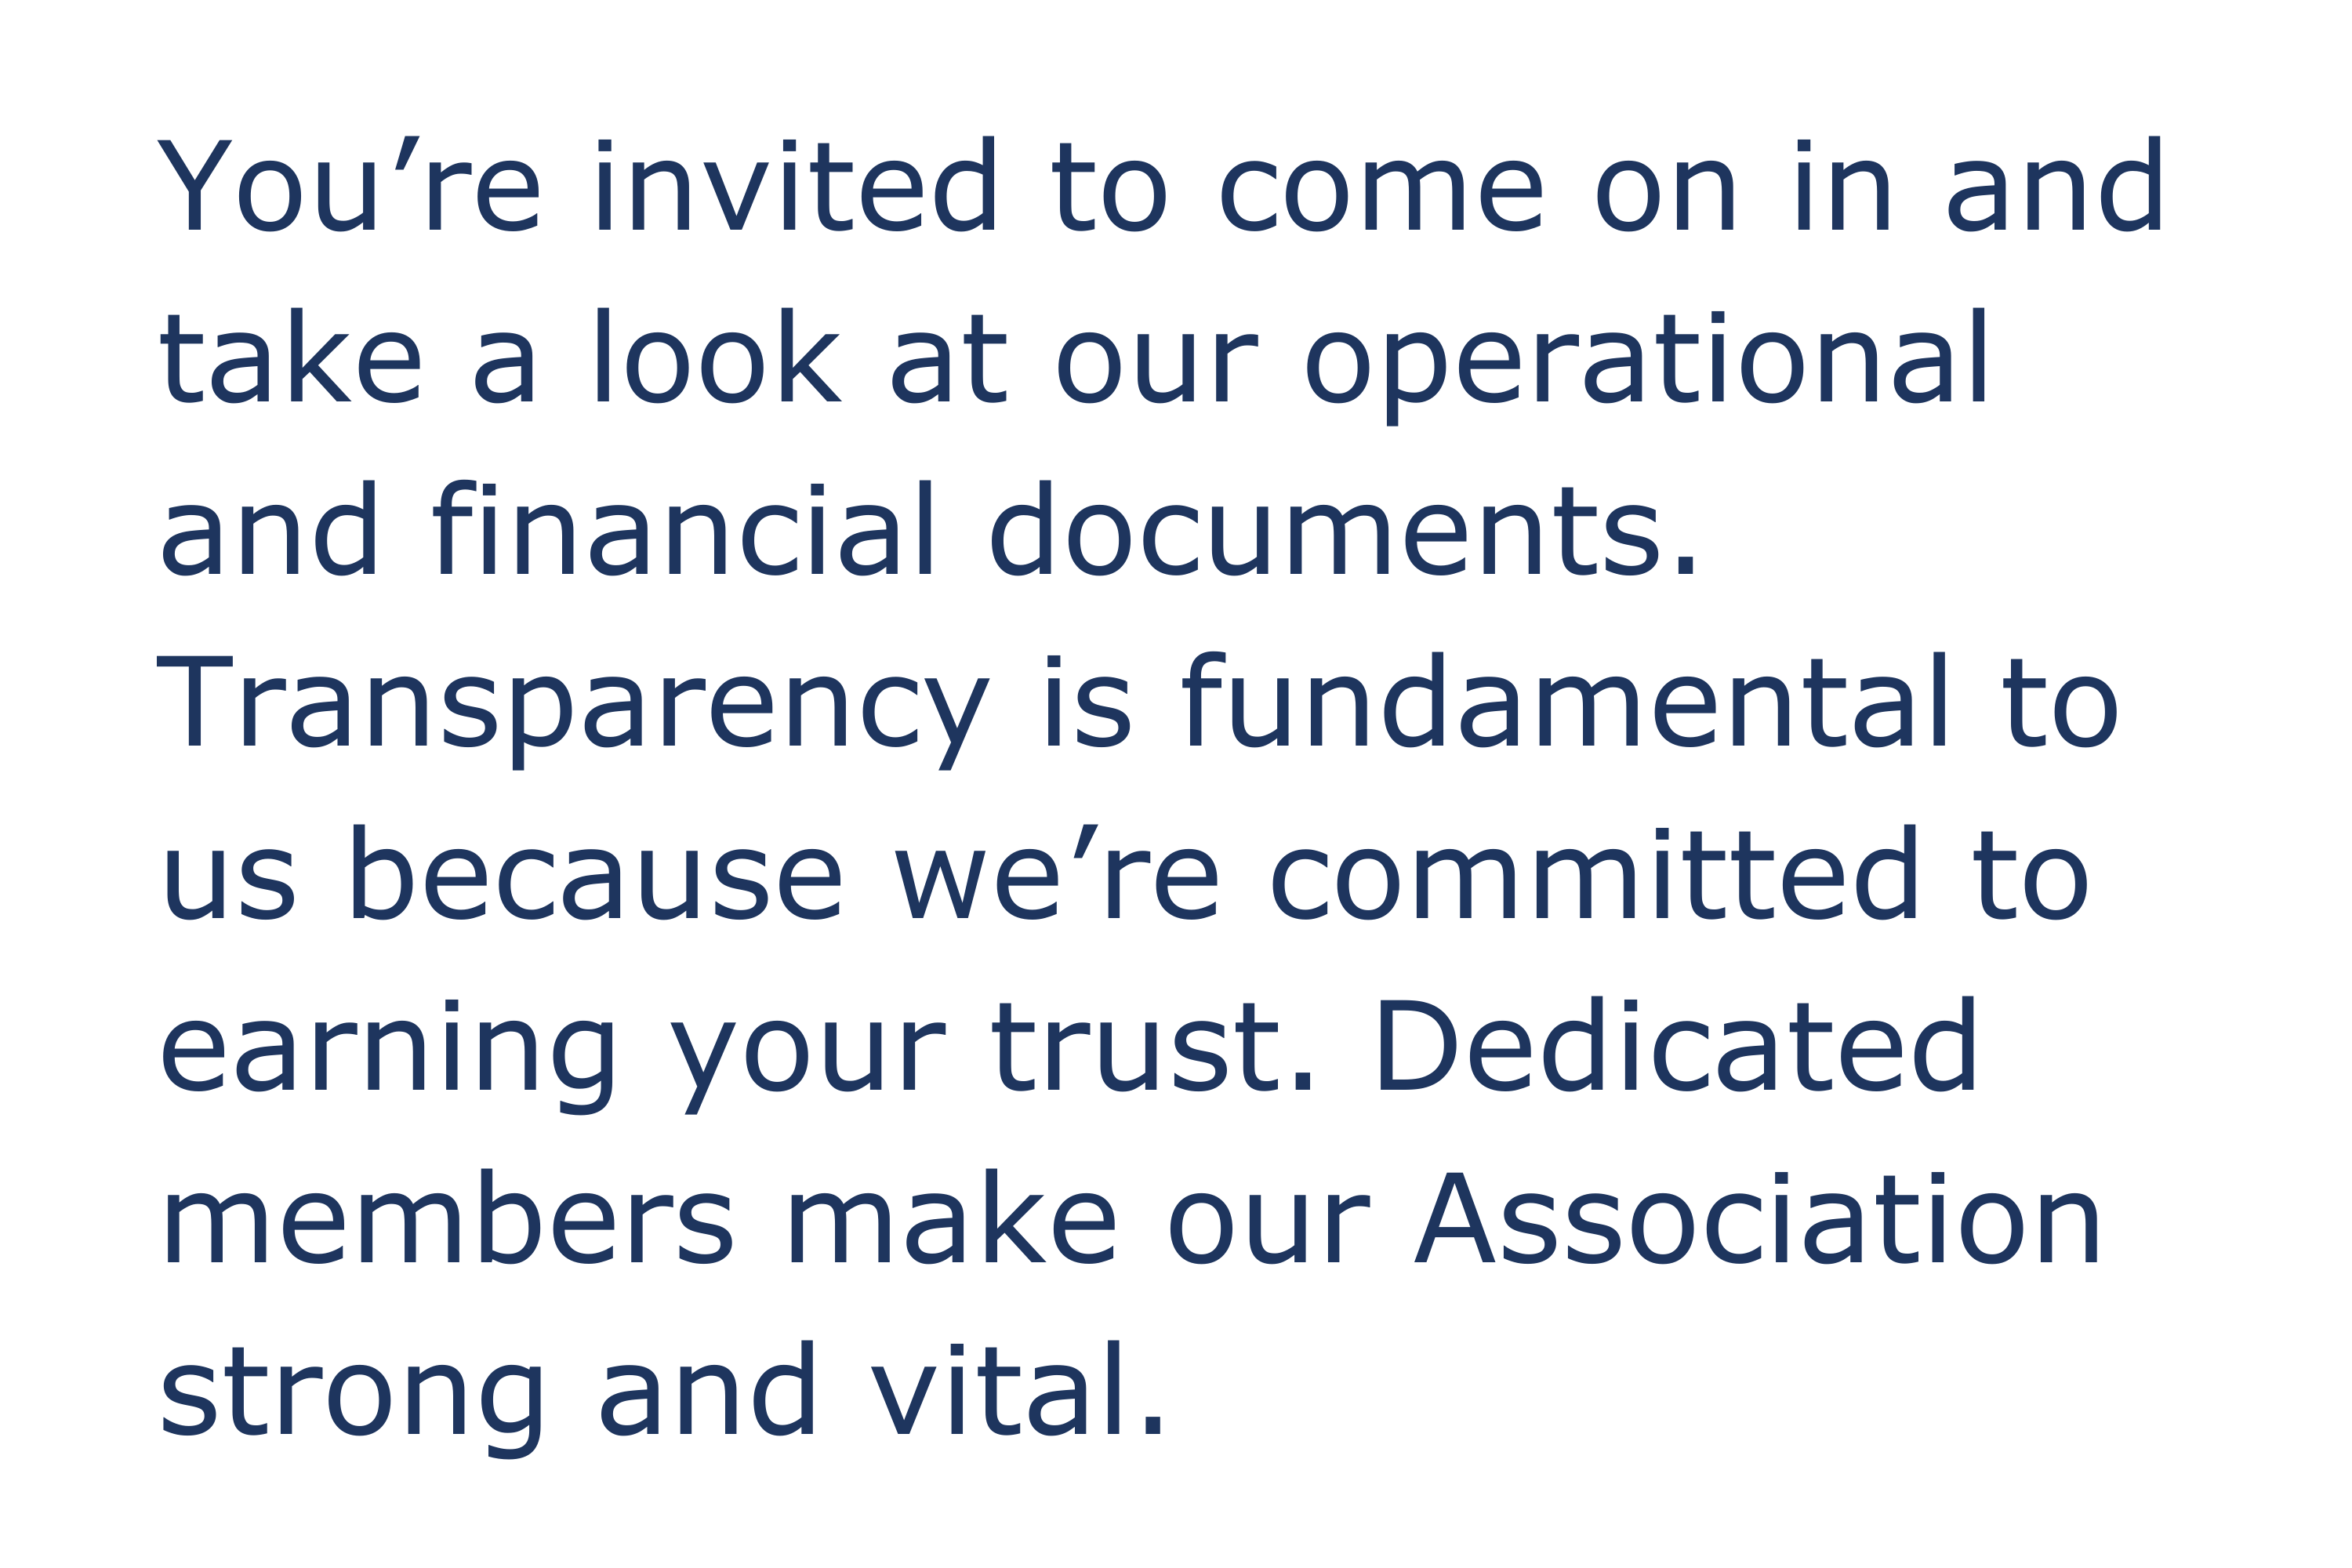 You're invited to come on in and take a look at our operational and financial documents. Transparency is fundamental to us because we're committed to earning your trust. Dedicated members make our Association strong and vital.